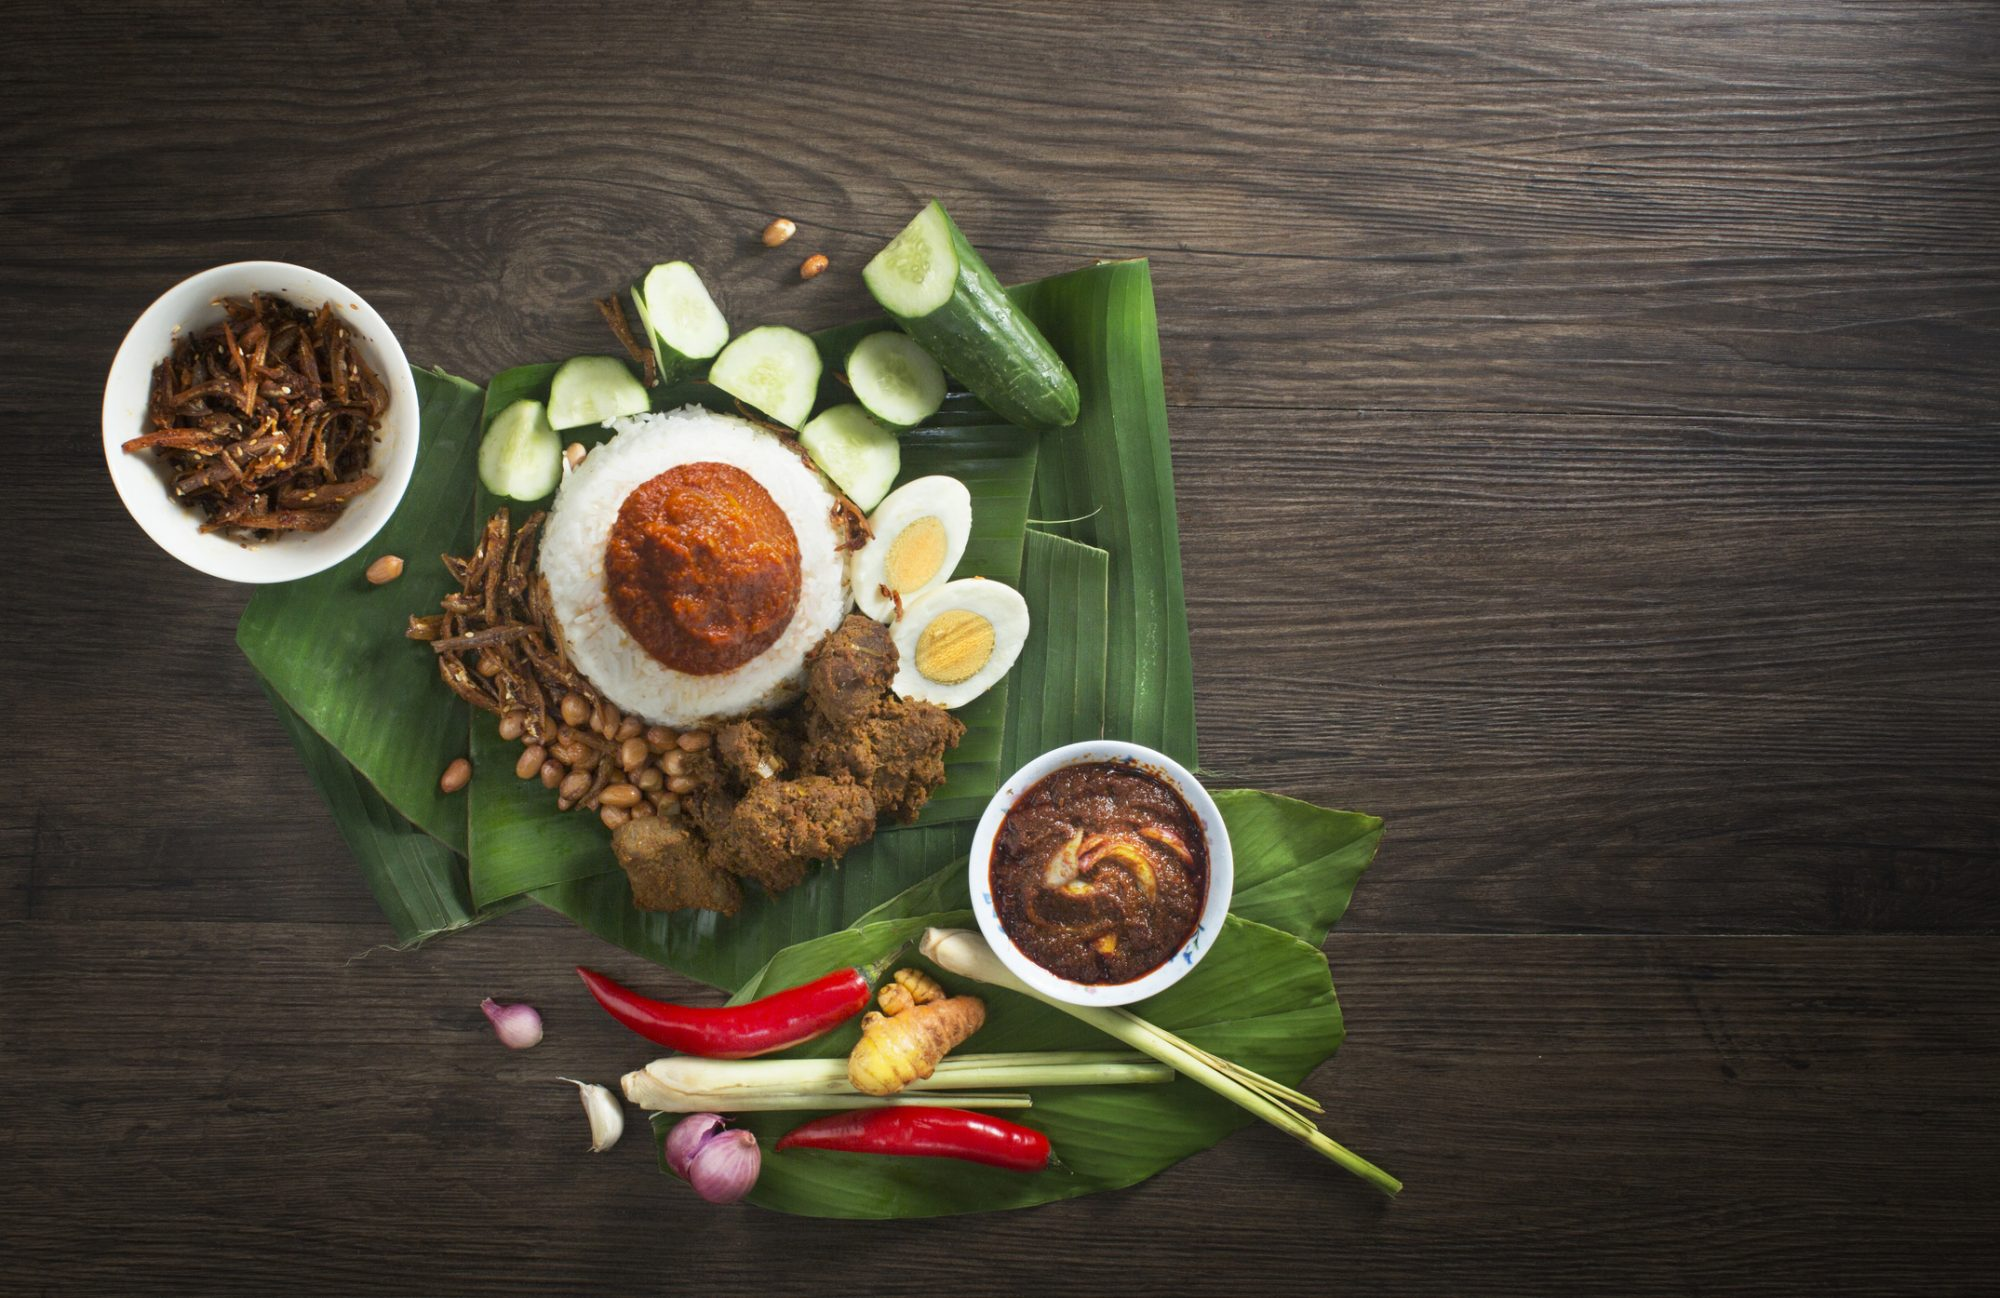 """Malaysia traditional food """"Nasi lemak"""" and ingredients on rustic wooden table top."""